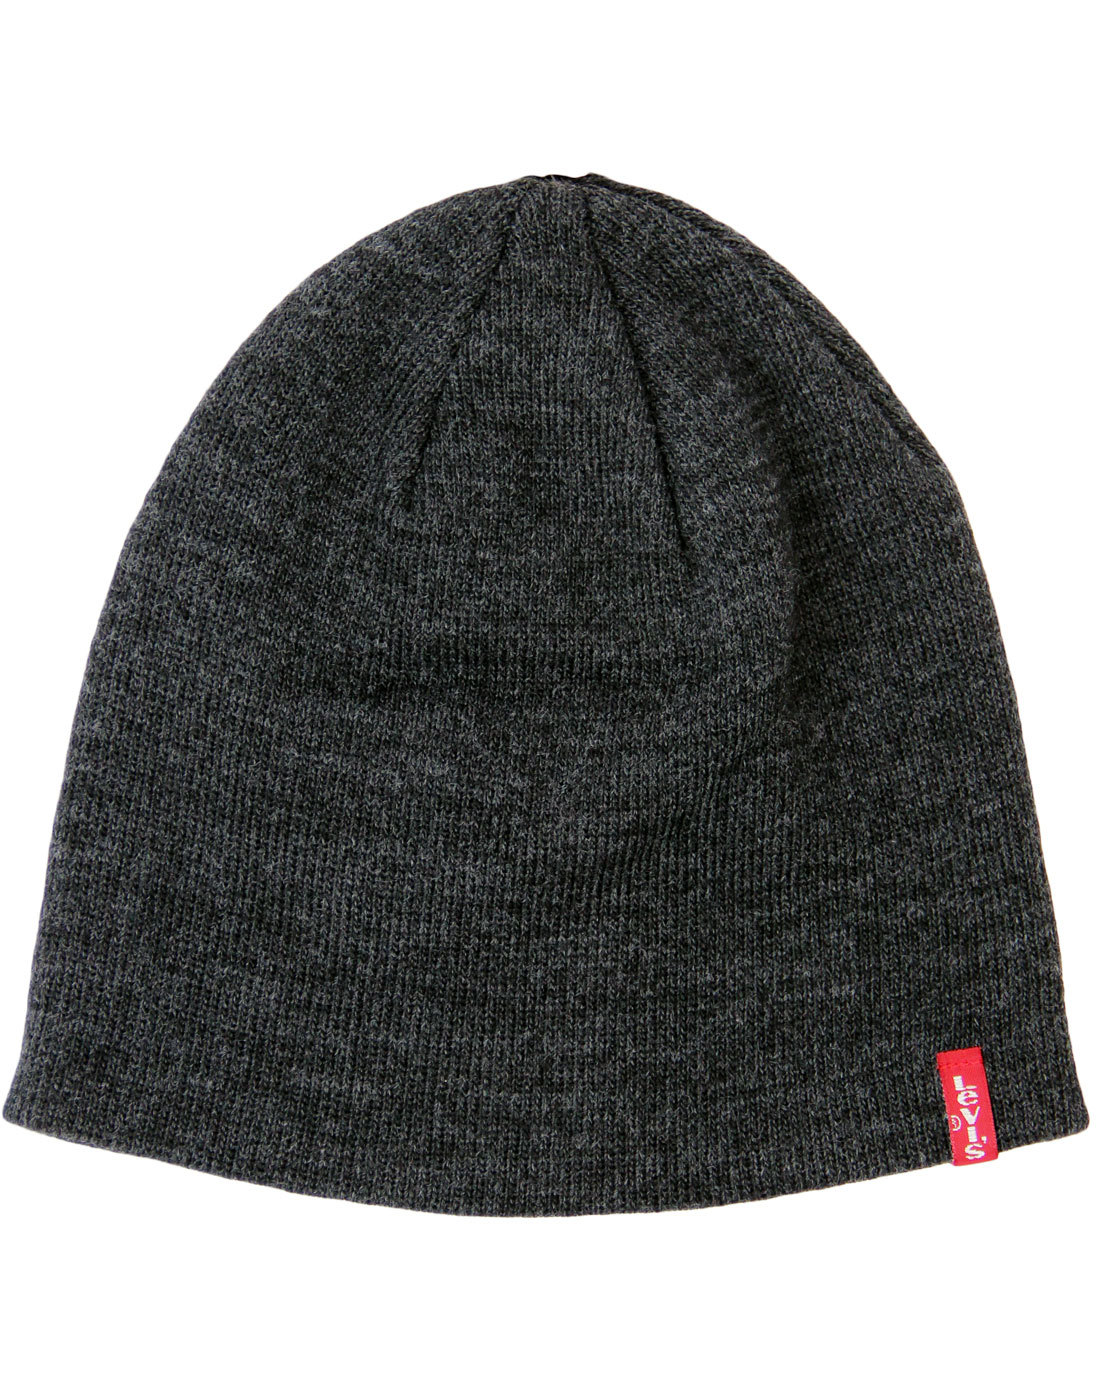 LEVI'S® Retro 1970s Indie Knitted Beanie Hat (DG)